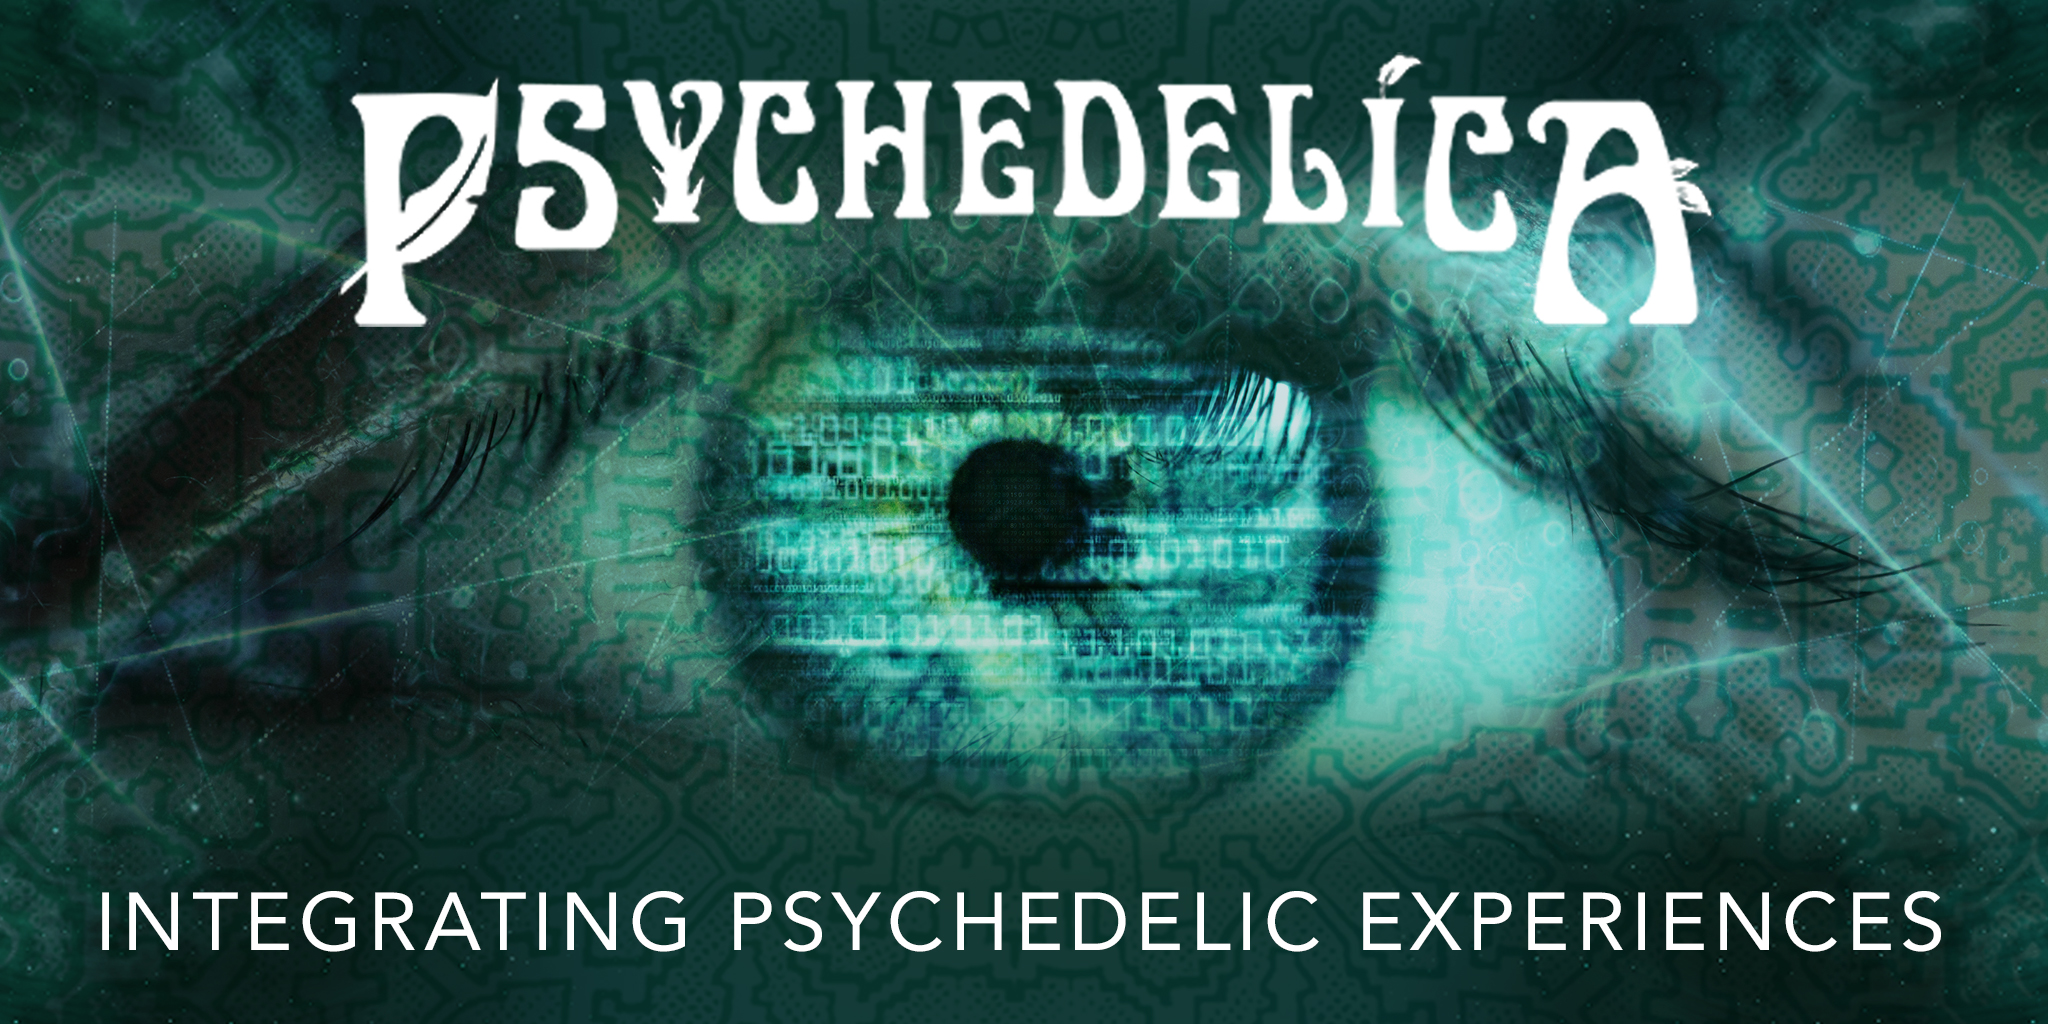 171446_p_e10_integrating-psychedelic-experiences_2048x1024.jpg